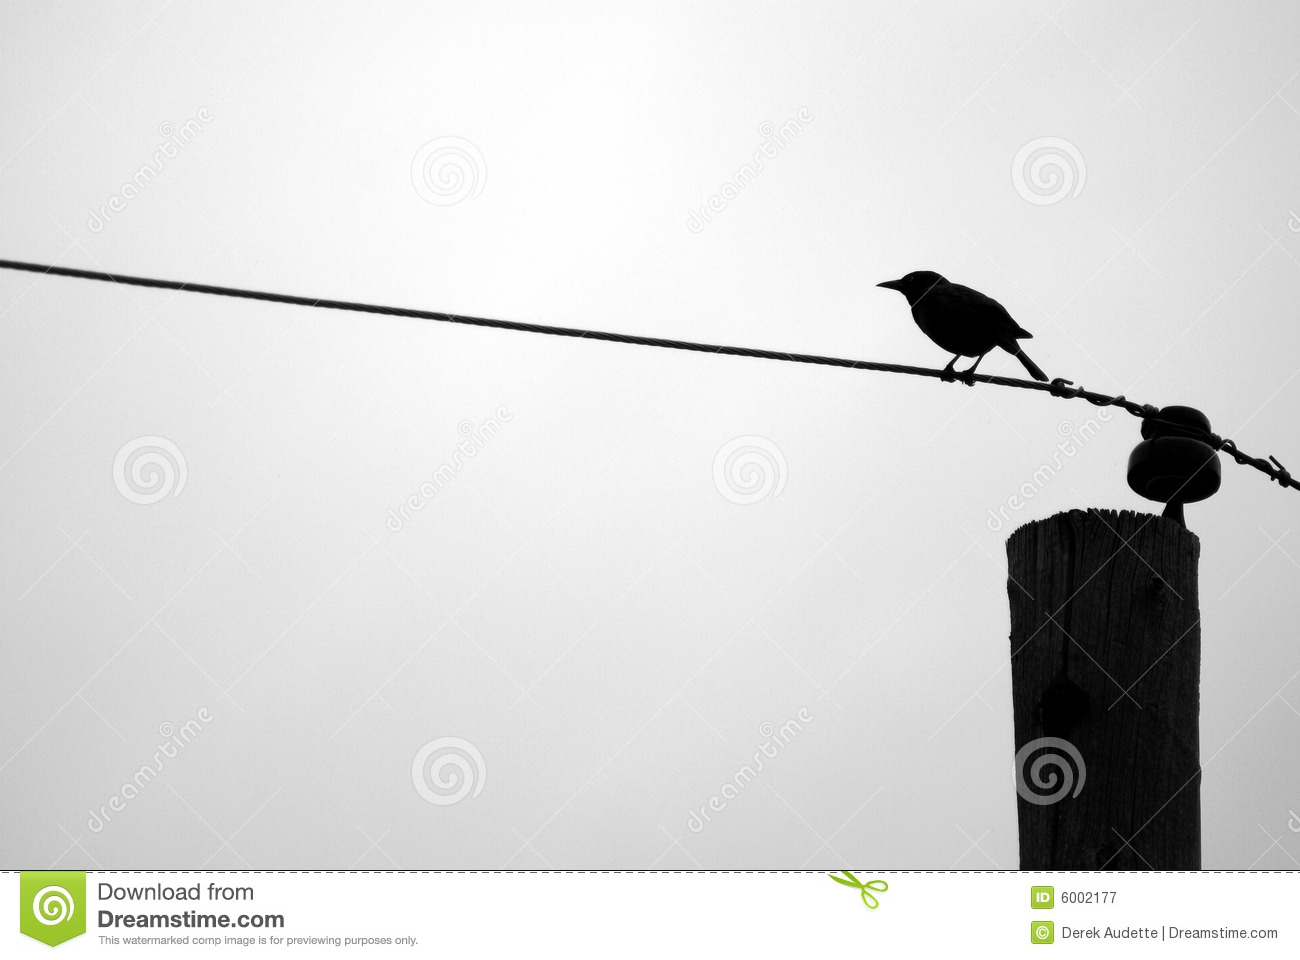 Blackbird Silhouette On Telephone Wire Stock Image - Image of lines ...